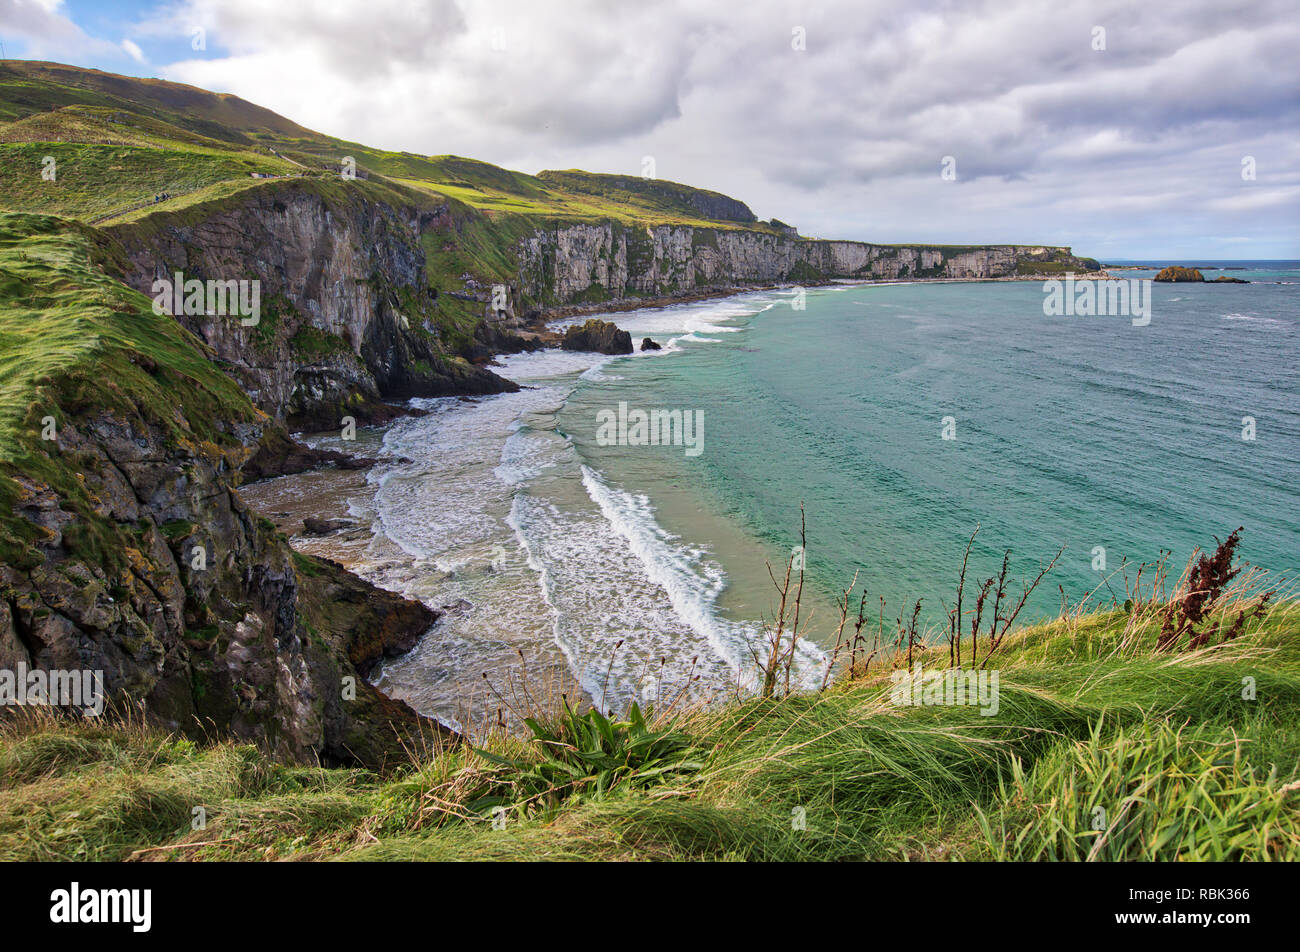 Tourists and visitors explore and walk across the Rope Bridge at Carrick-A-Rede and Larrybane Bay on the West Coast of Ireland. Stock Photo